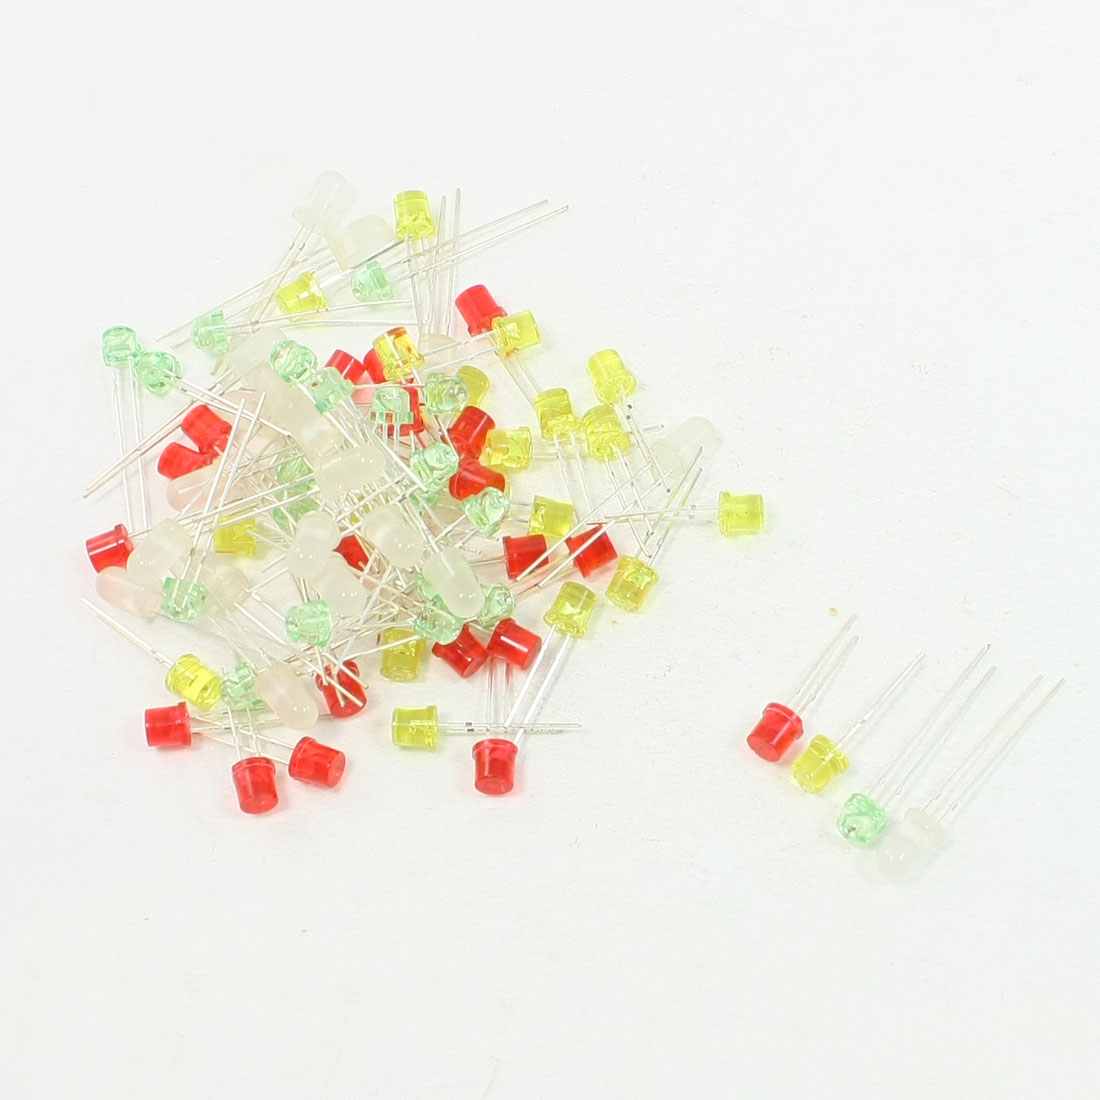 80 Pcs 5mm Cylinder Head Multi Color Light LED Emitting Diode DC 3V